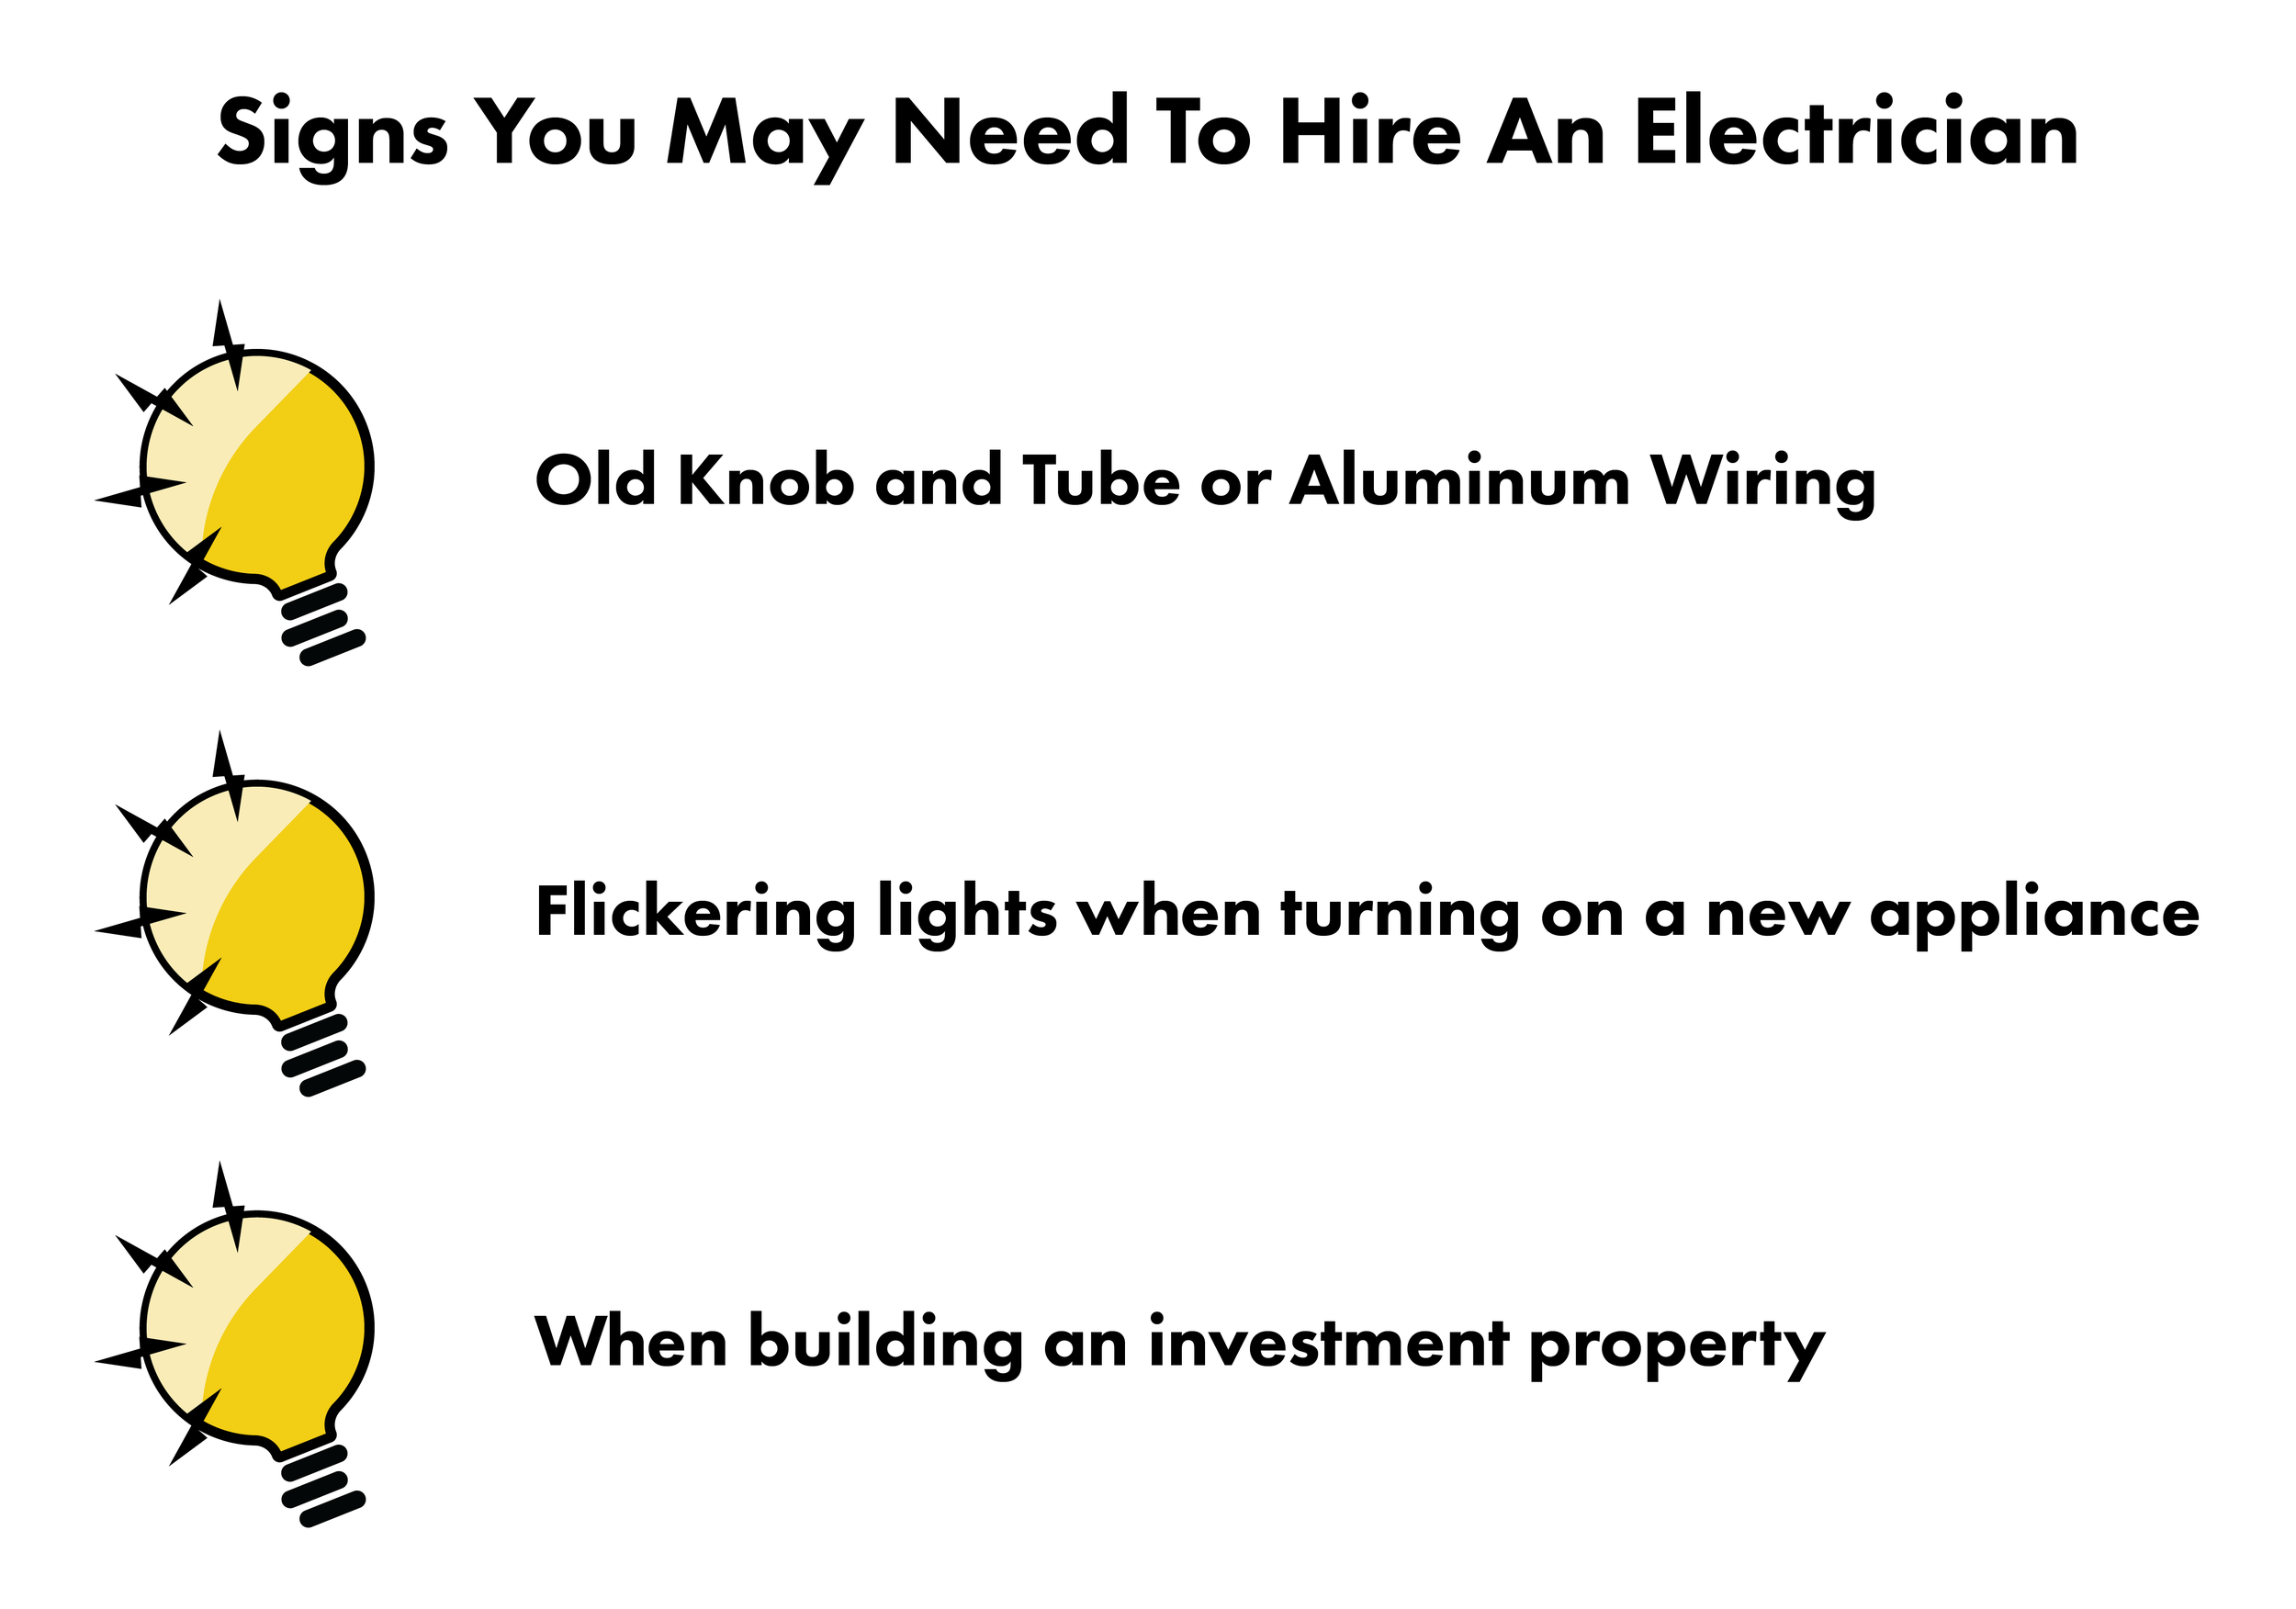 Signs you may need an electrician guide graphics_Artboard 30.png